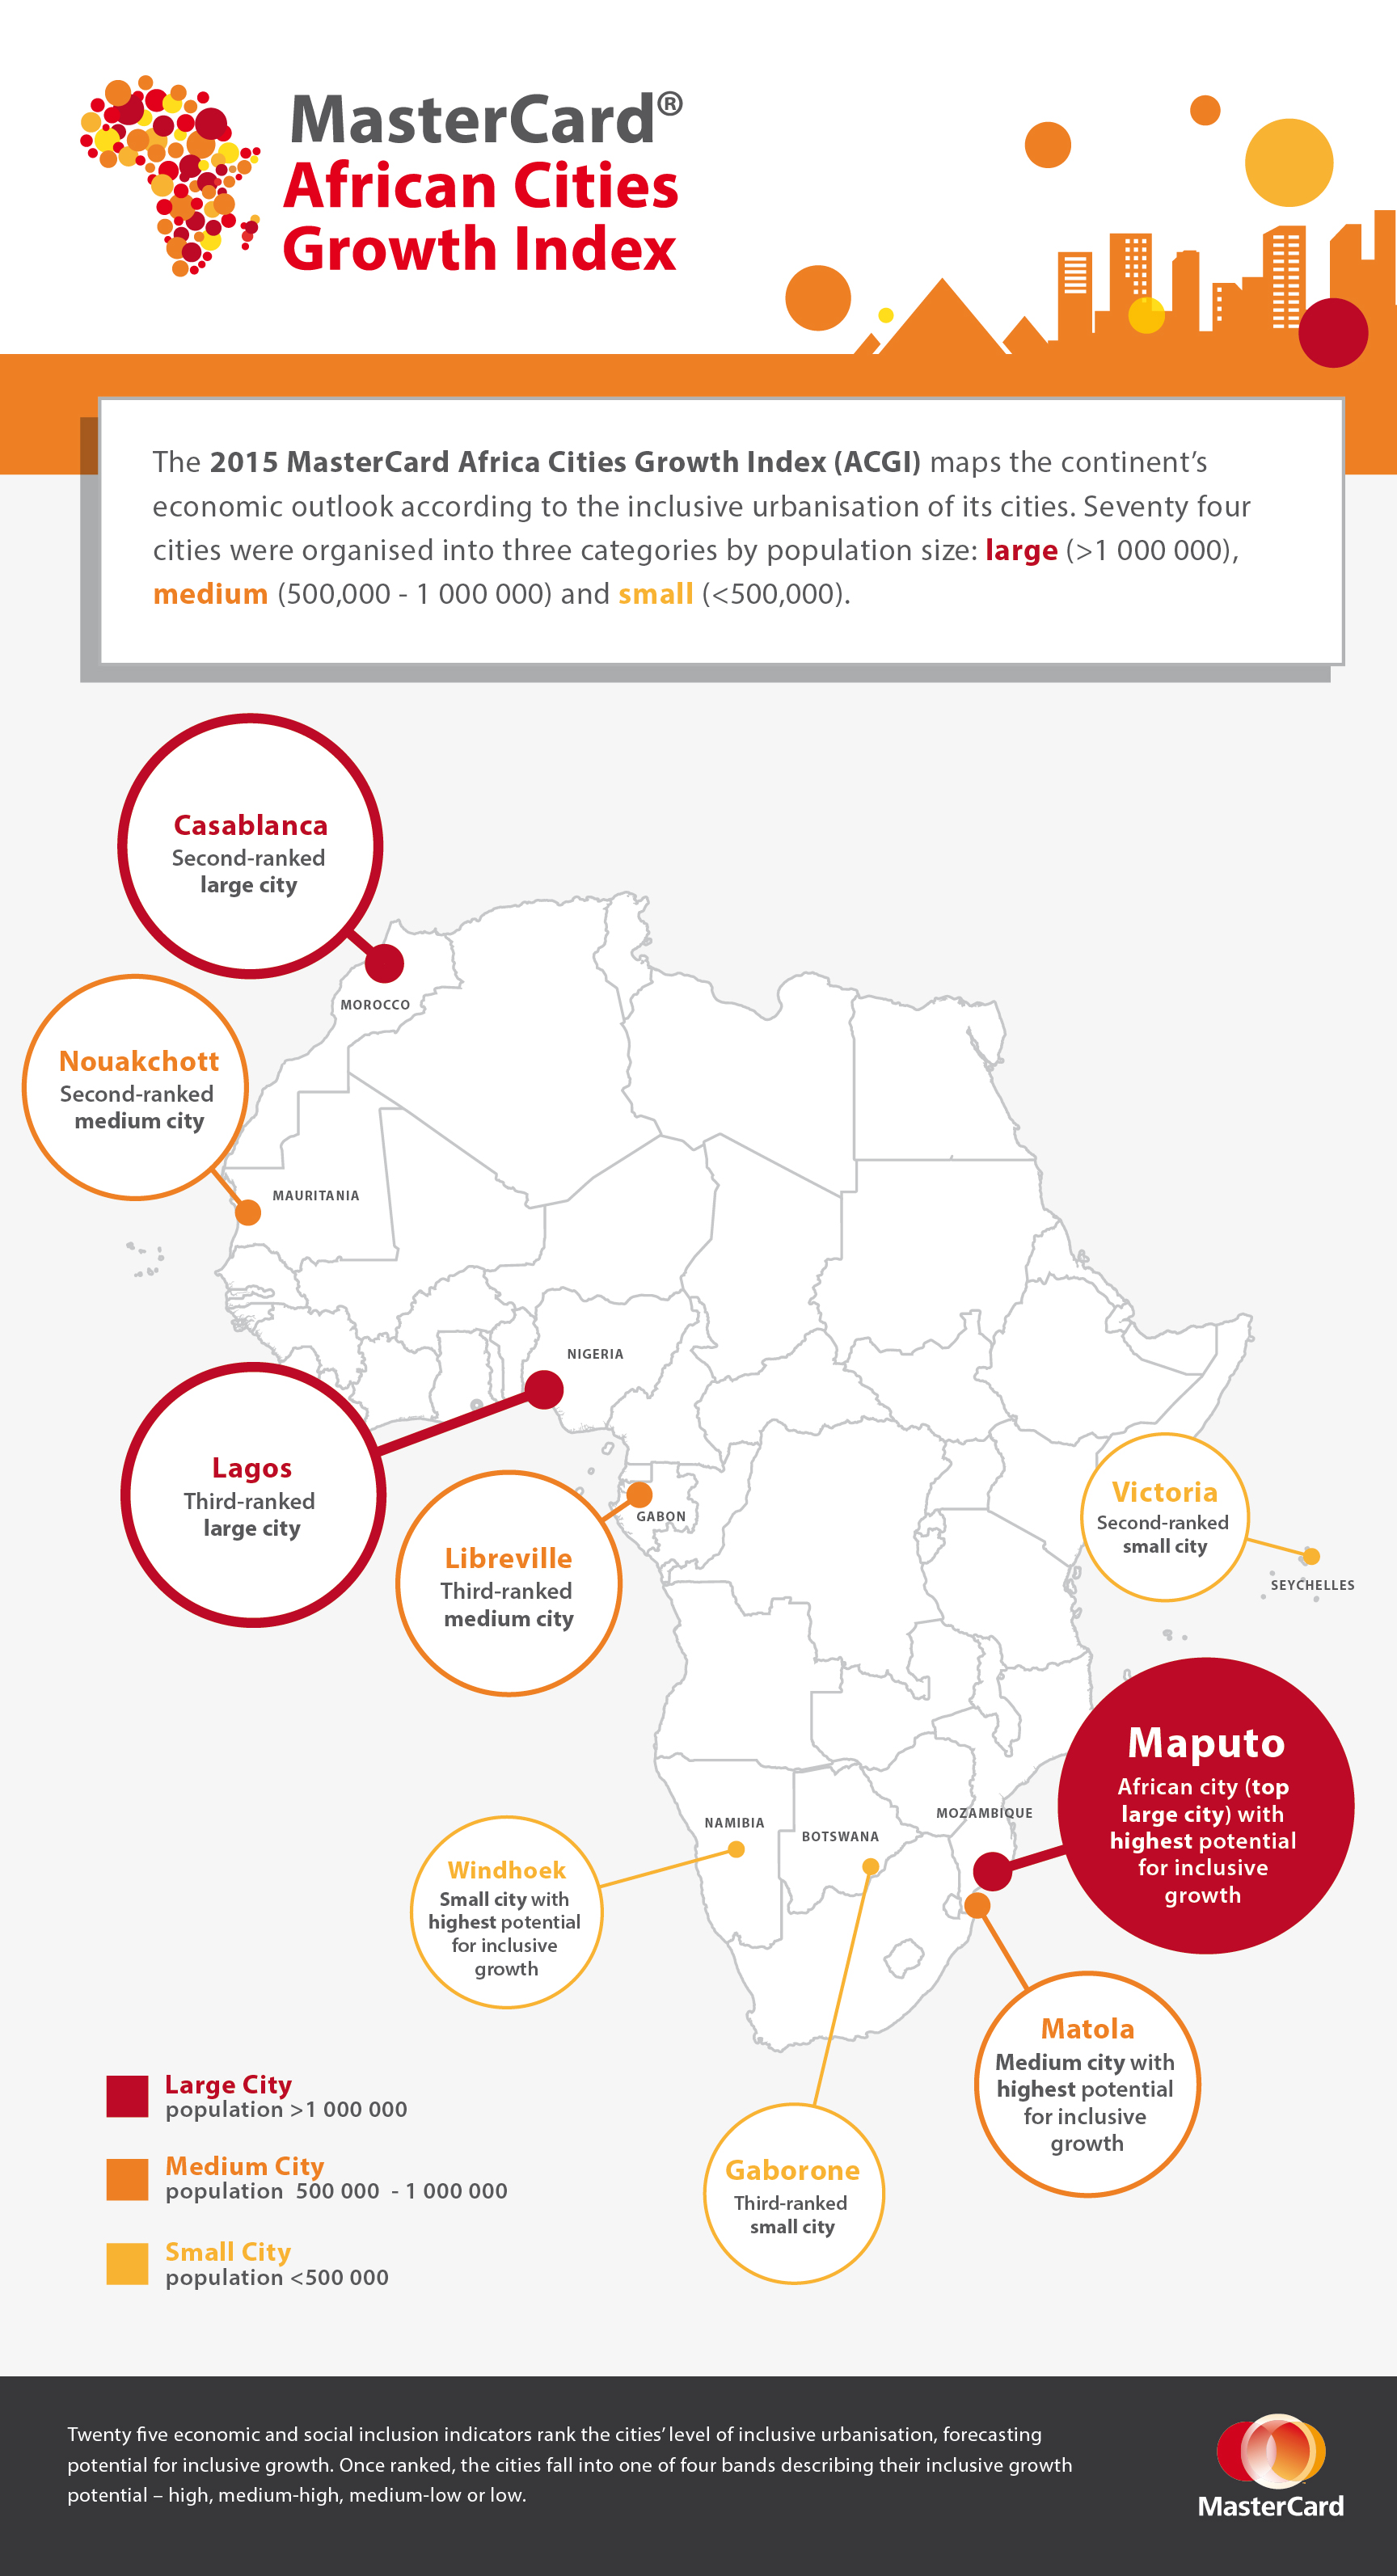 The 2015 MasterCard African Cities Growth Index maps African cities' economic outlook according to their potential for inclusive urbanisation. The 74 analysed cities are organised into three categories by population size: large (> 1,000,000), medium (500,000 – 1,000,000) and small (< 500,000). Maputo, the capital of Mozambique, is the large African city with the highest potential for inclusive growth.